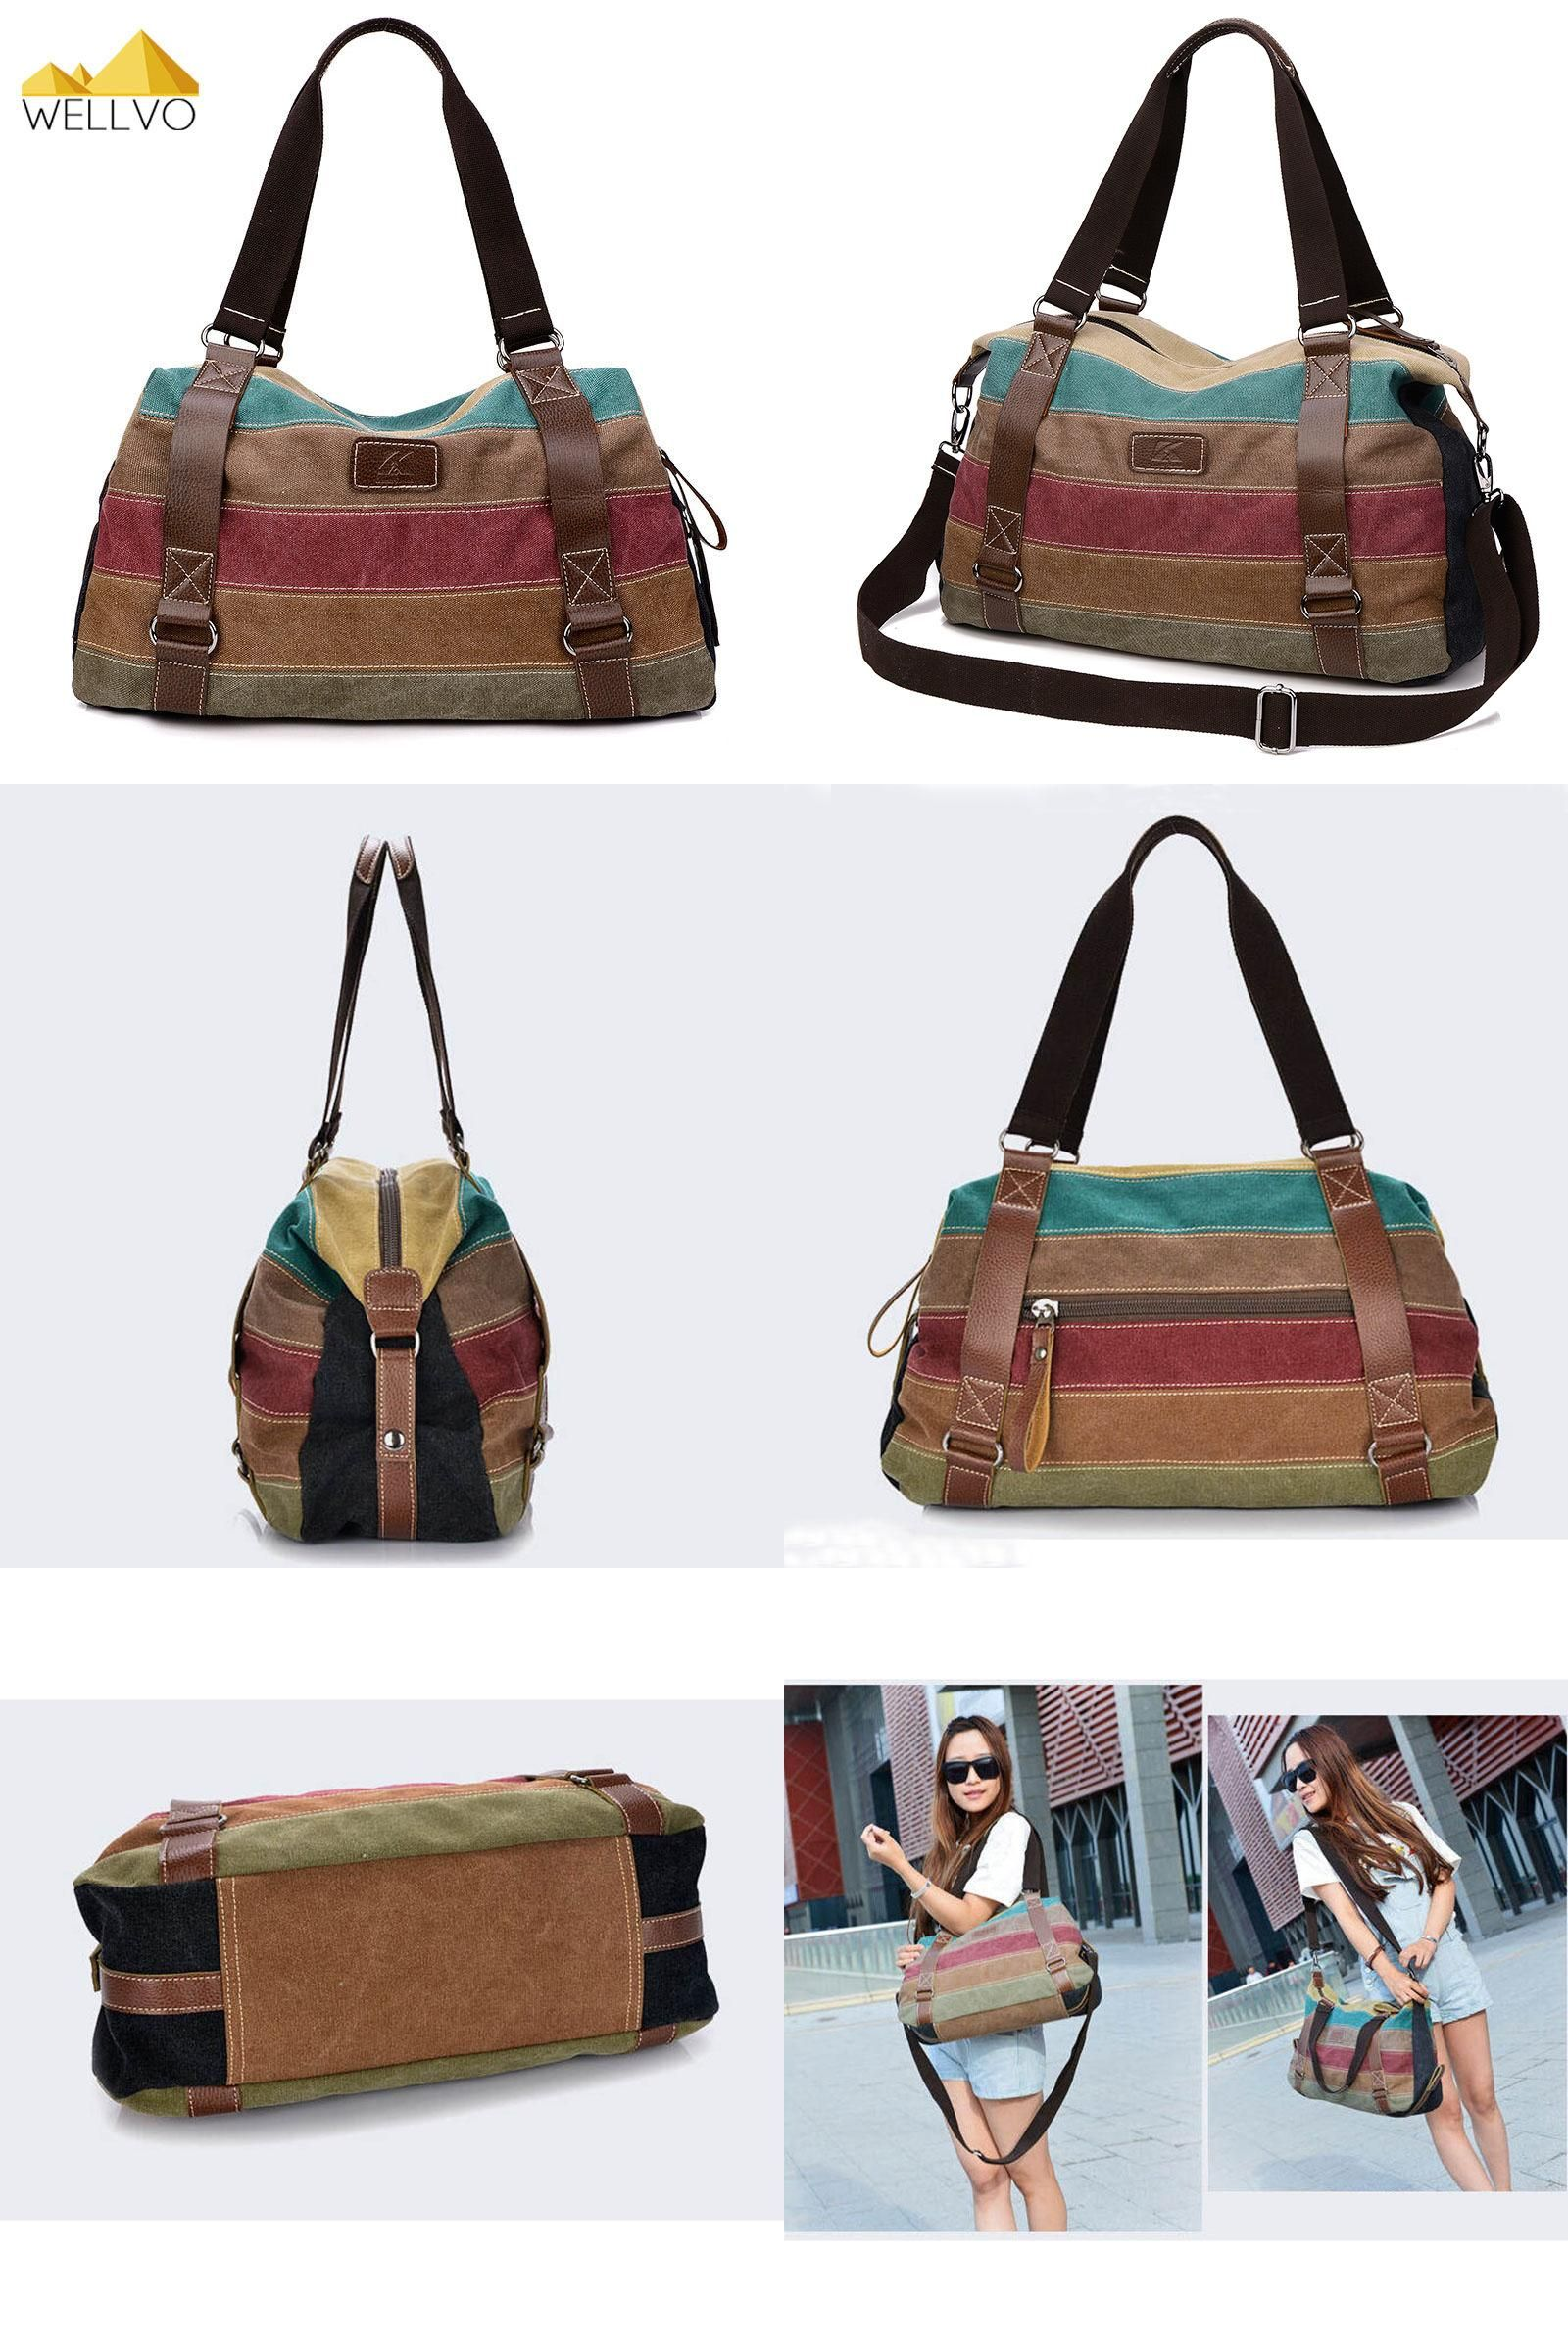 Visit to Buy] Large Canvas Bag Women Handbag Ladies Casual ...